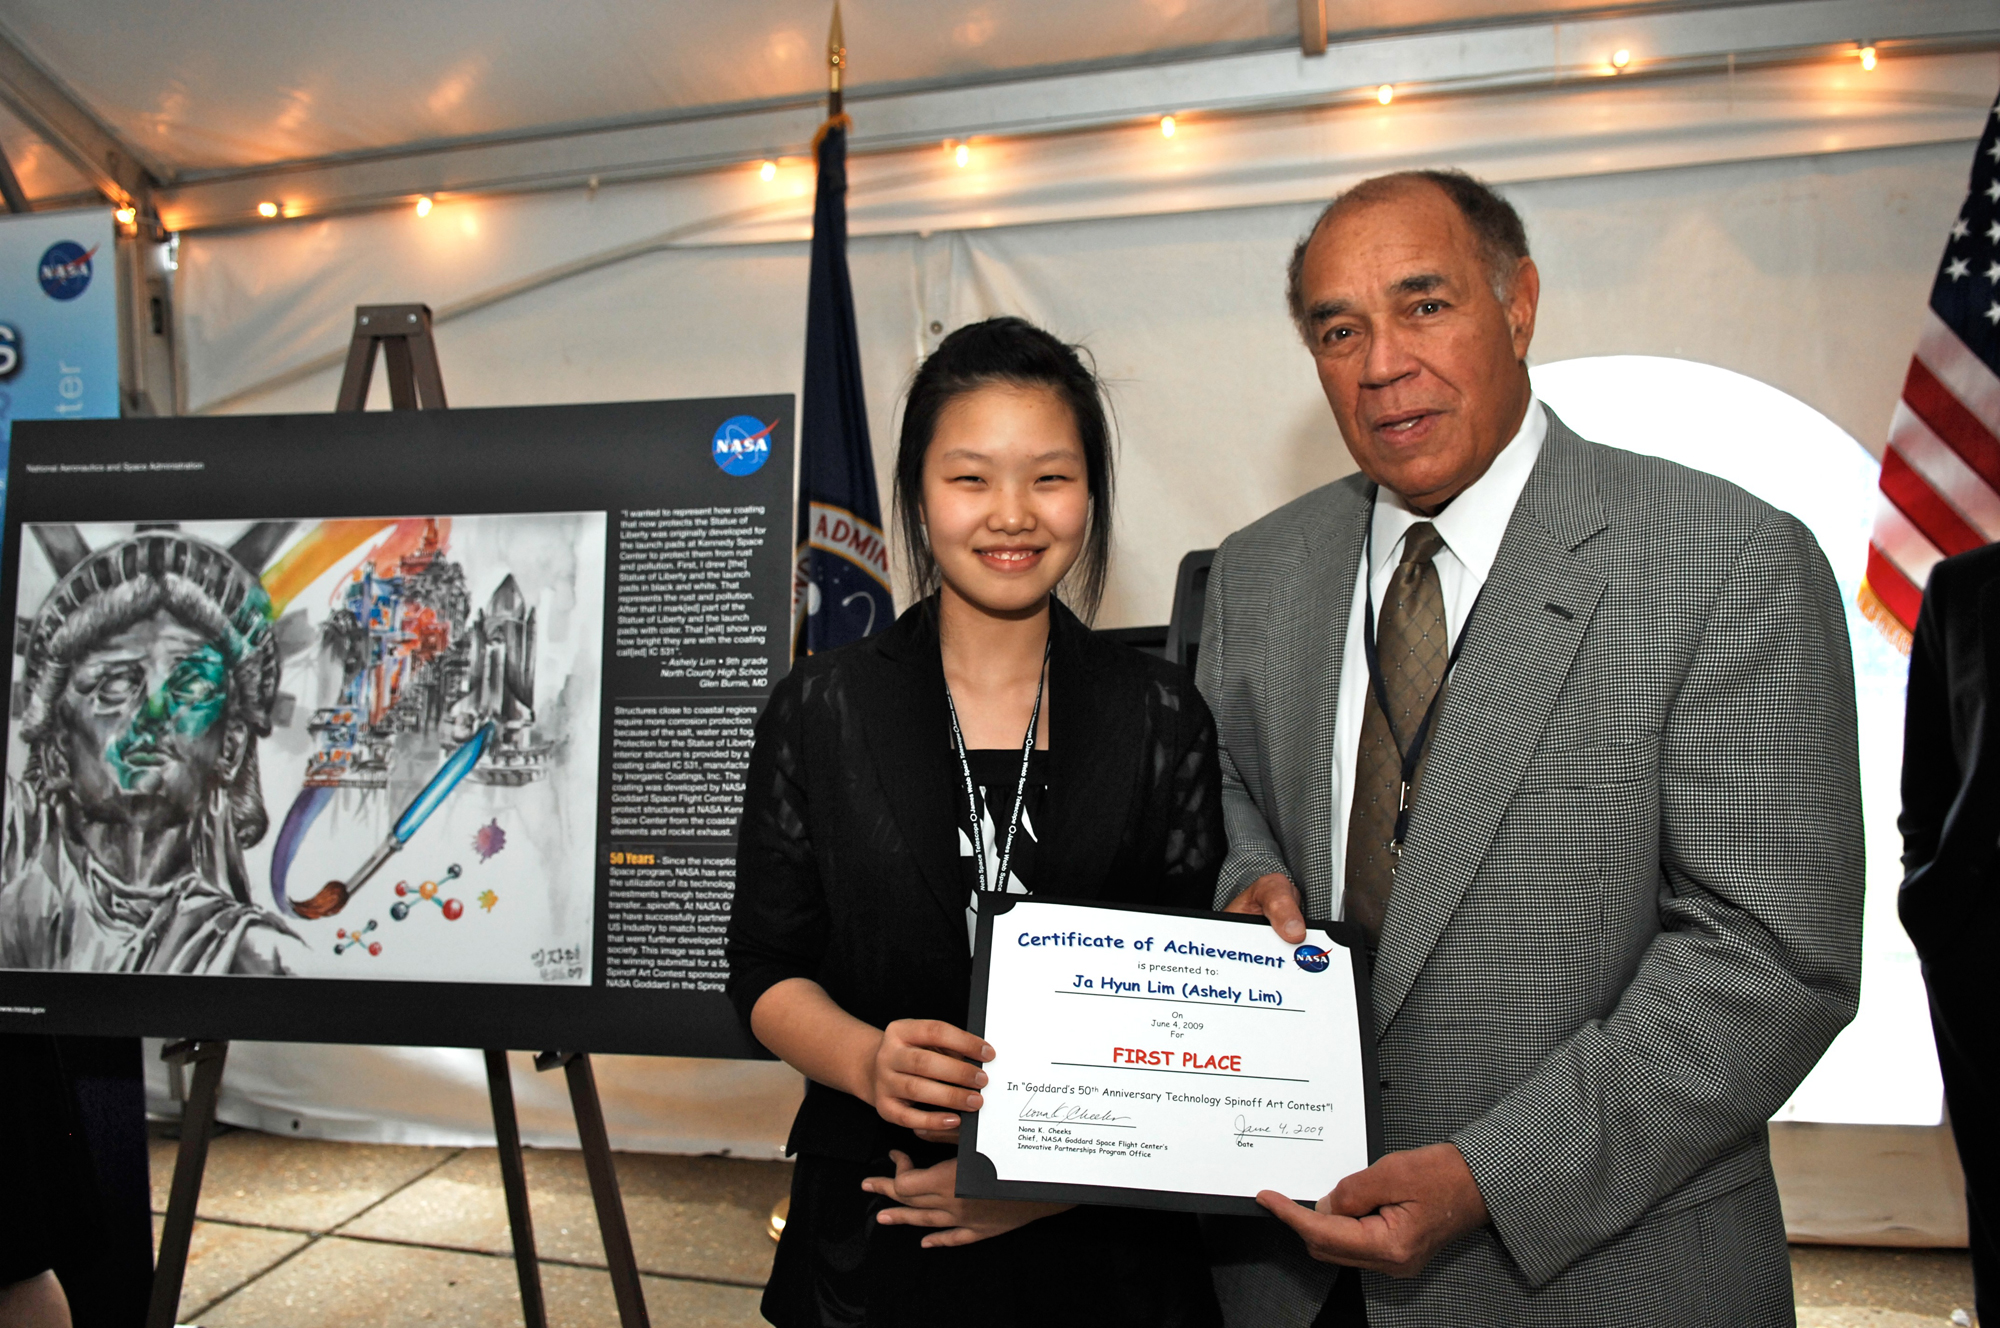 Ja Hyun Ashely Lim is pictured here with her award-winning painting, and Fred Gregory, former NASA Deputy Administrator and former shuttle astronaut. She won the Goddard Celebrates 50 Years of Technology Spinoffs Art Contest